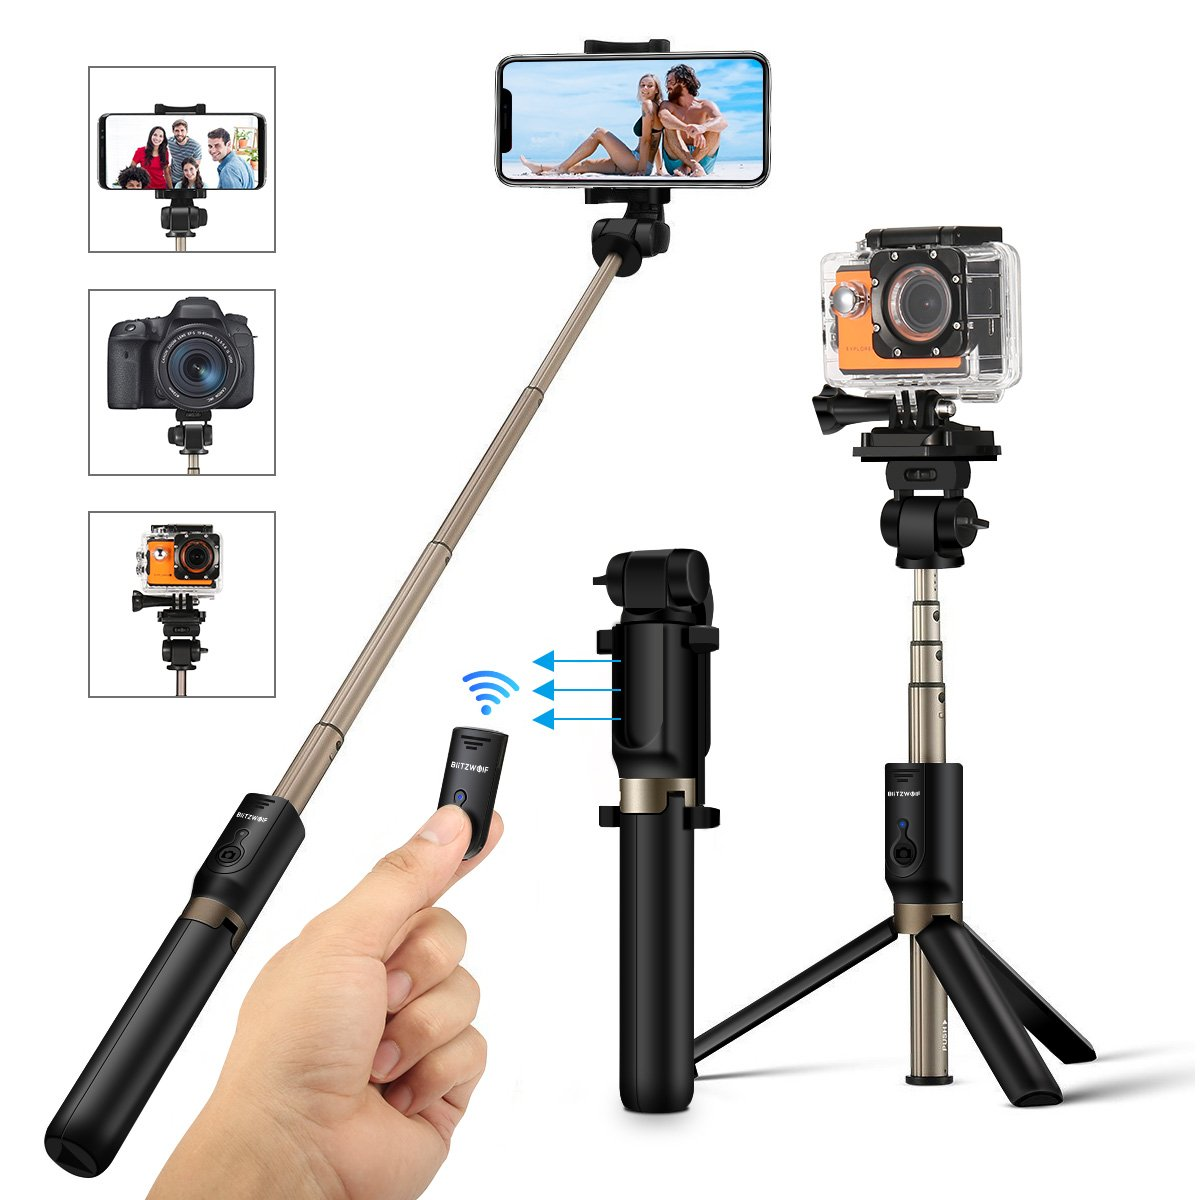 Selfie Stick Tripod with Remote for Action Camera iPhone Android 3.5-6 inch Smartphone – BlitzWolf 4 in 1 Selfie Stick